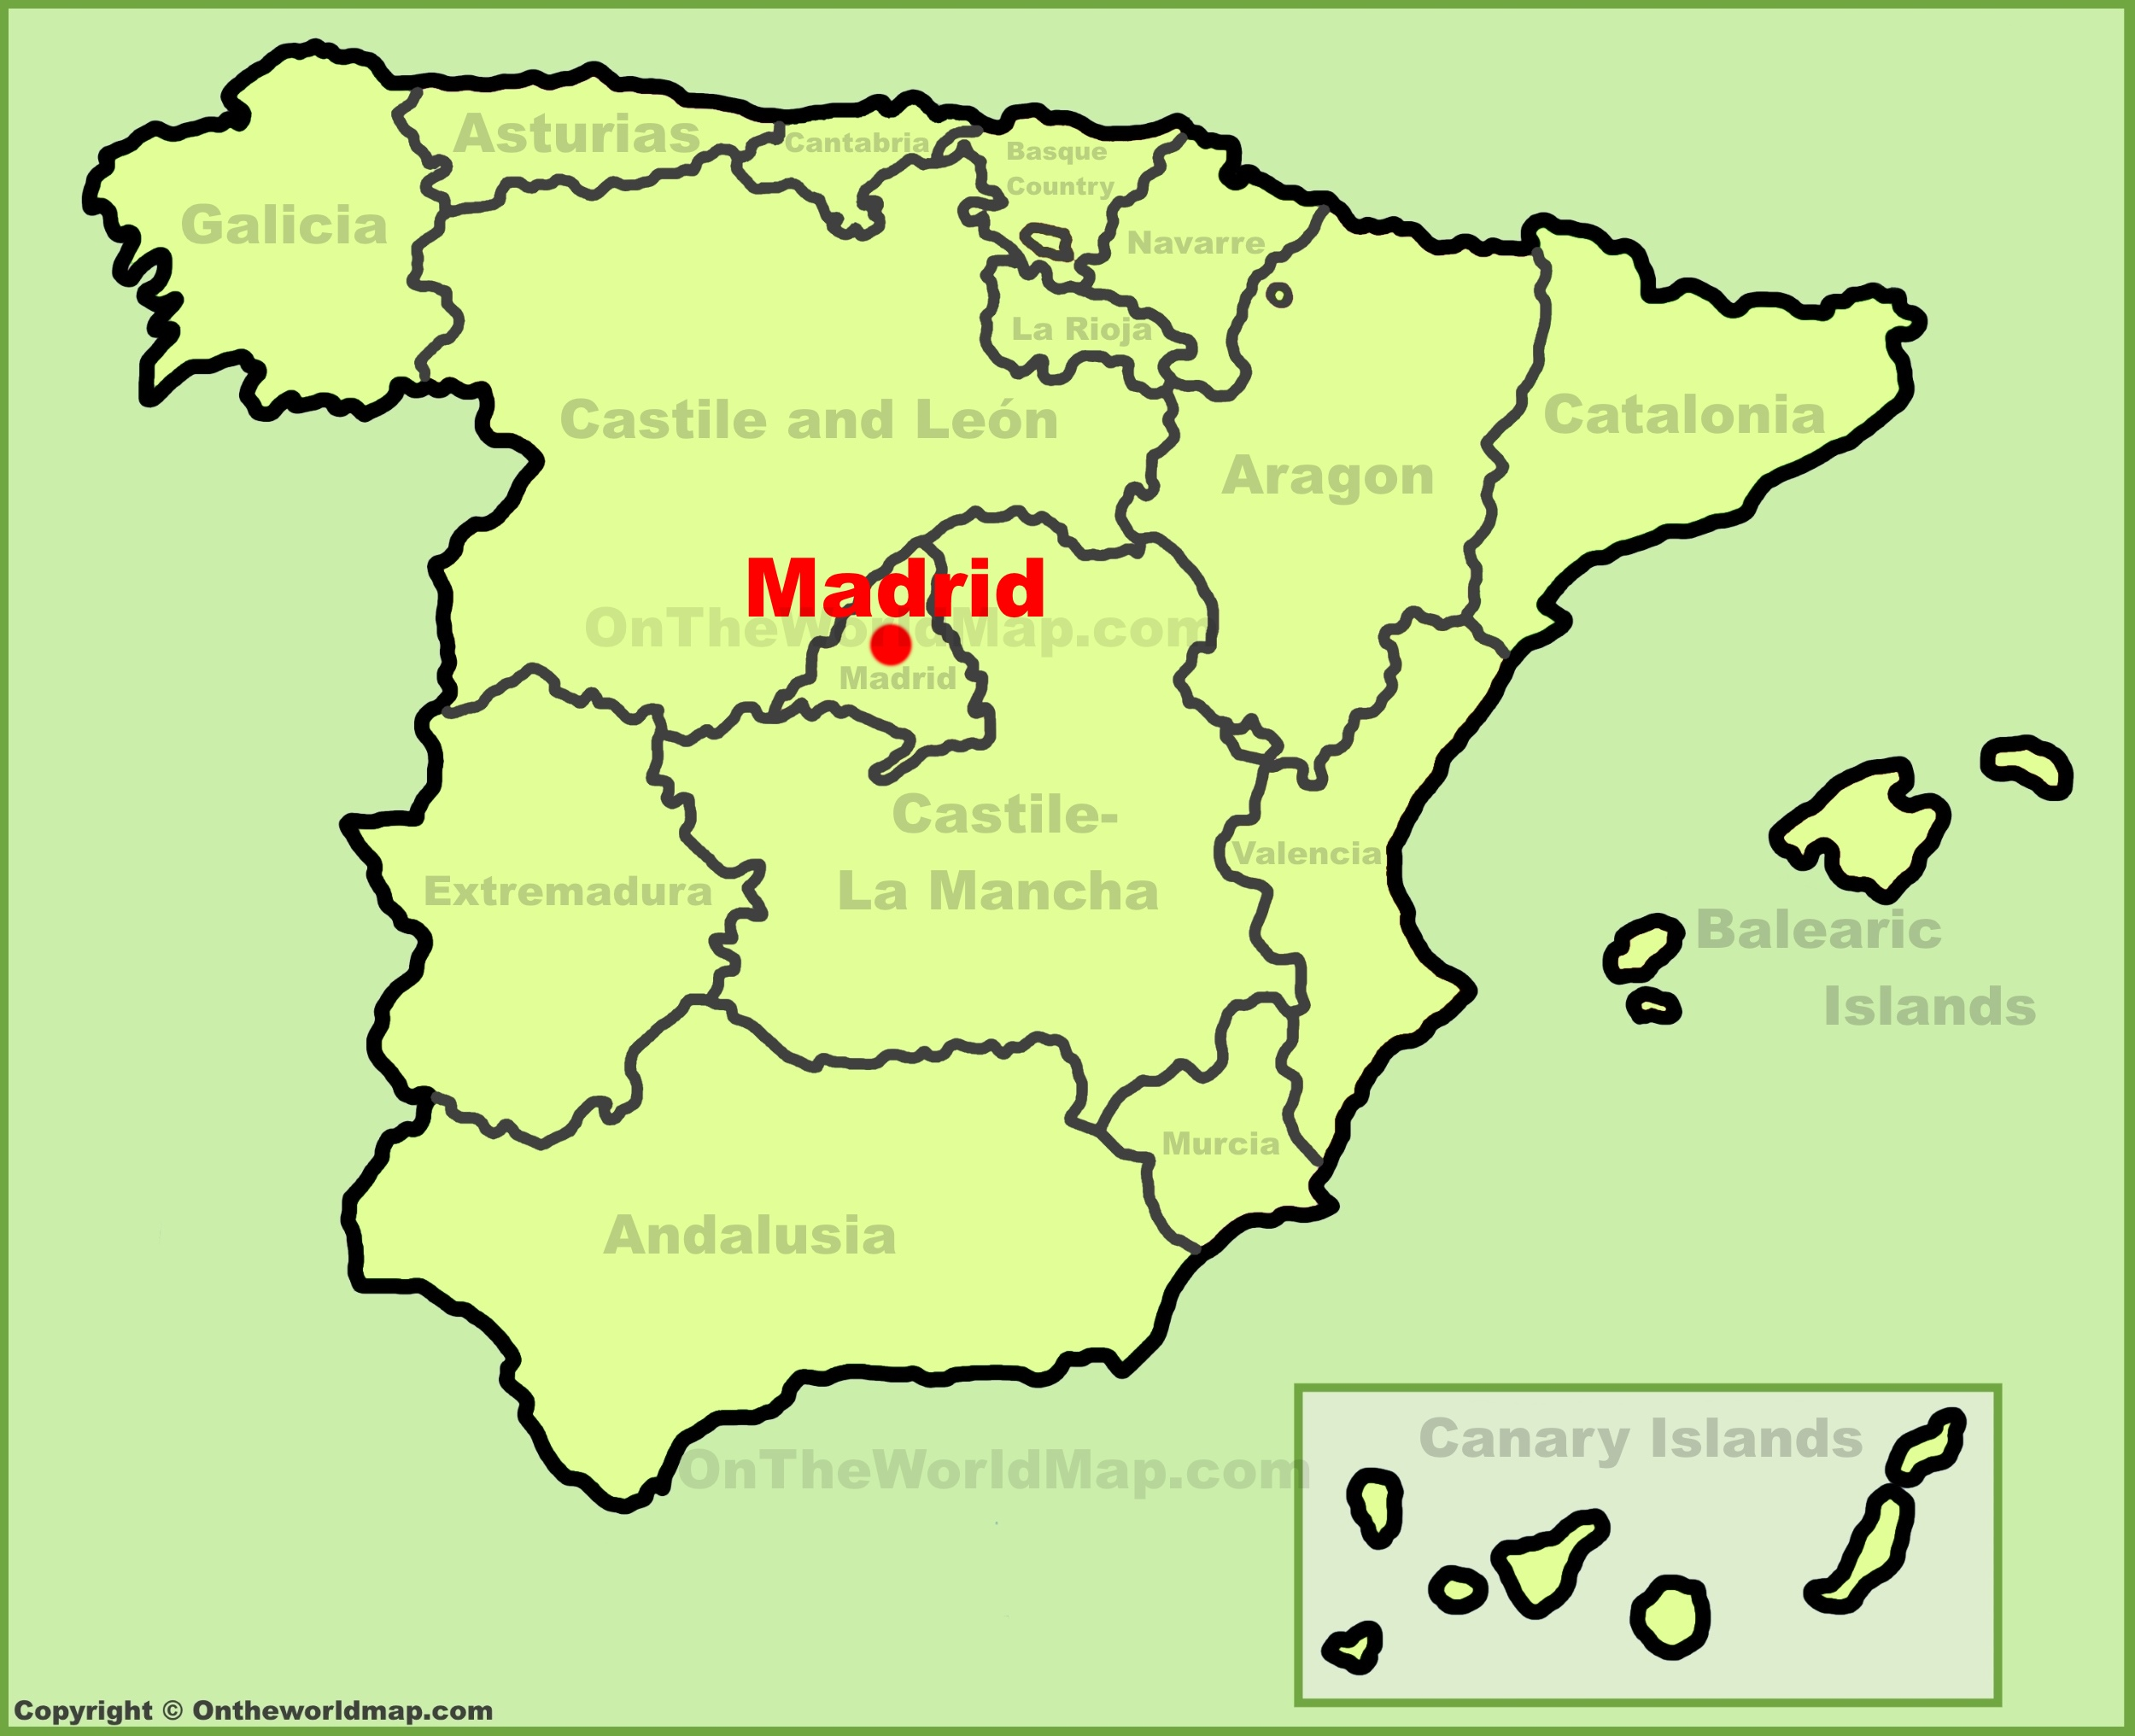 Map Of Madrid Spain Madrid Maps | Spain | Maps of Madrid City